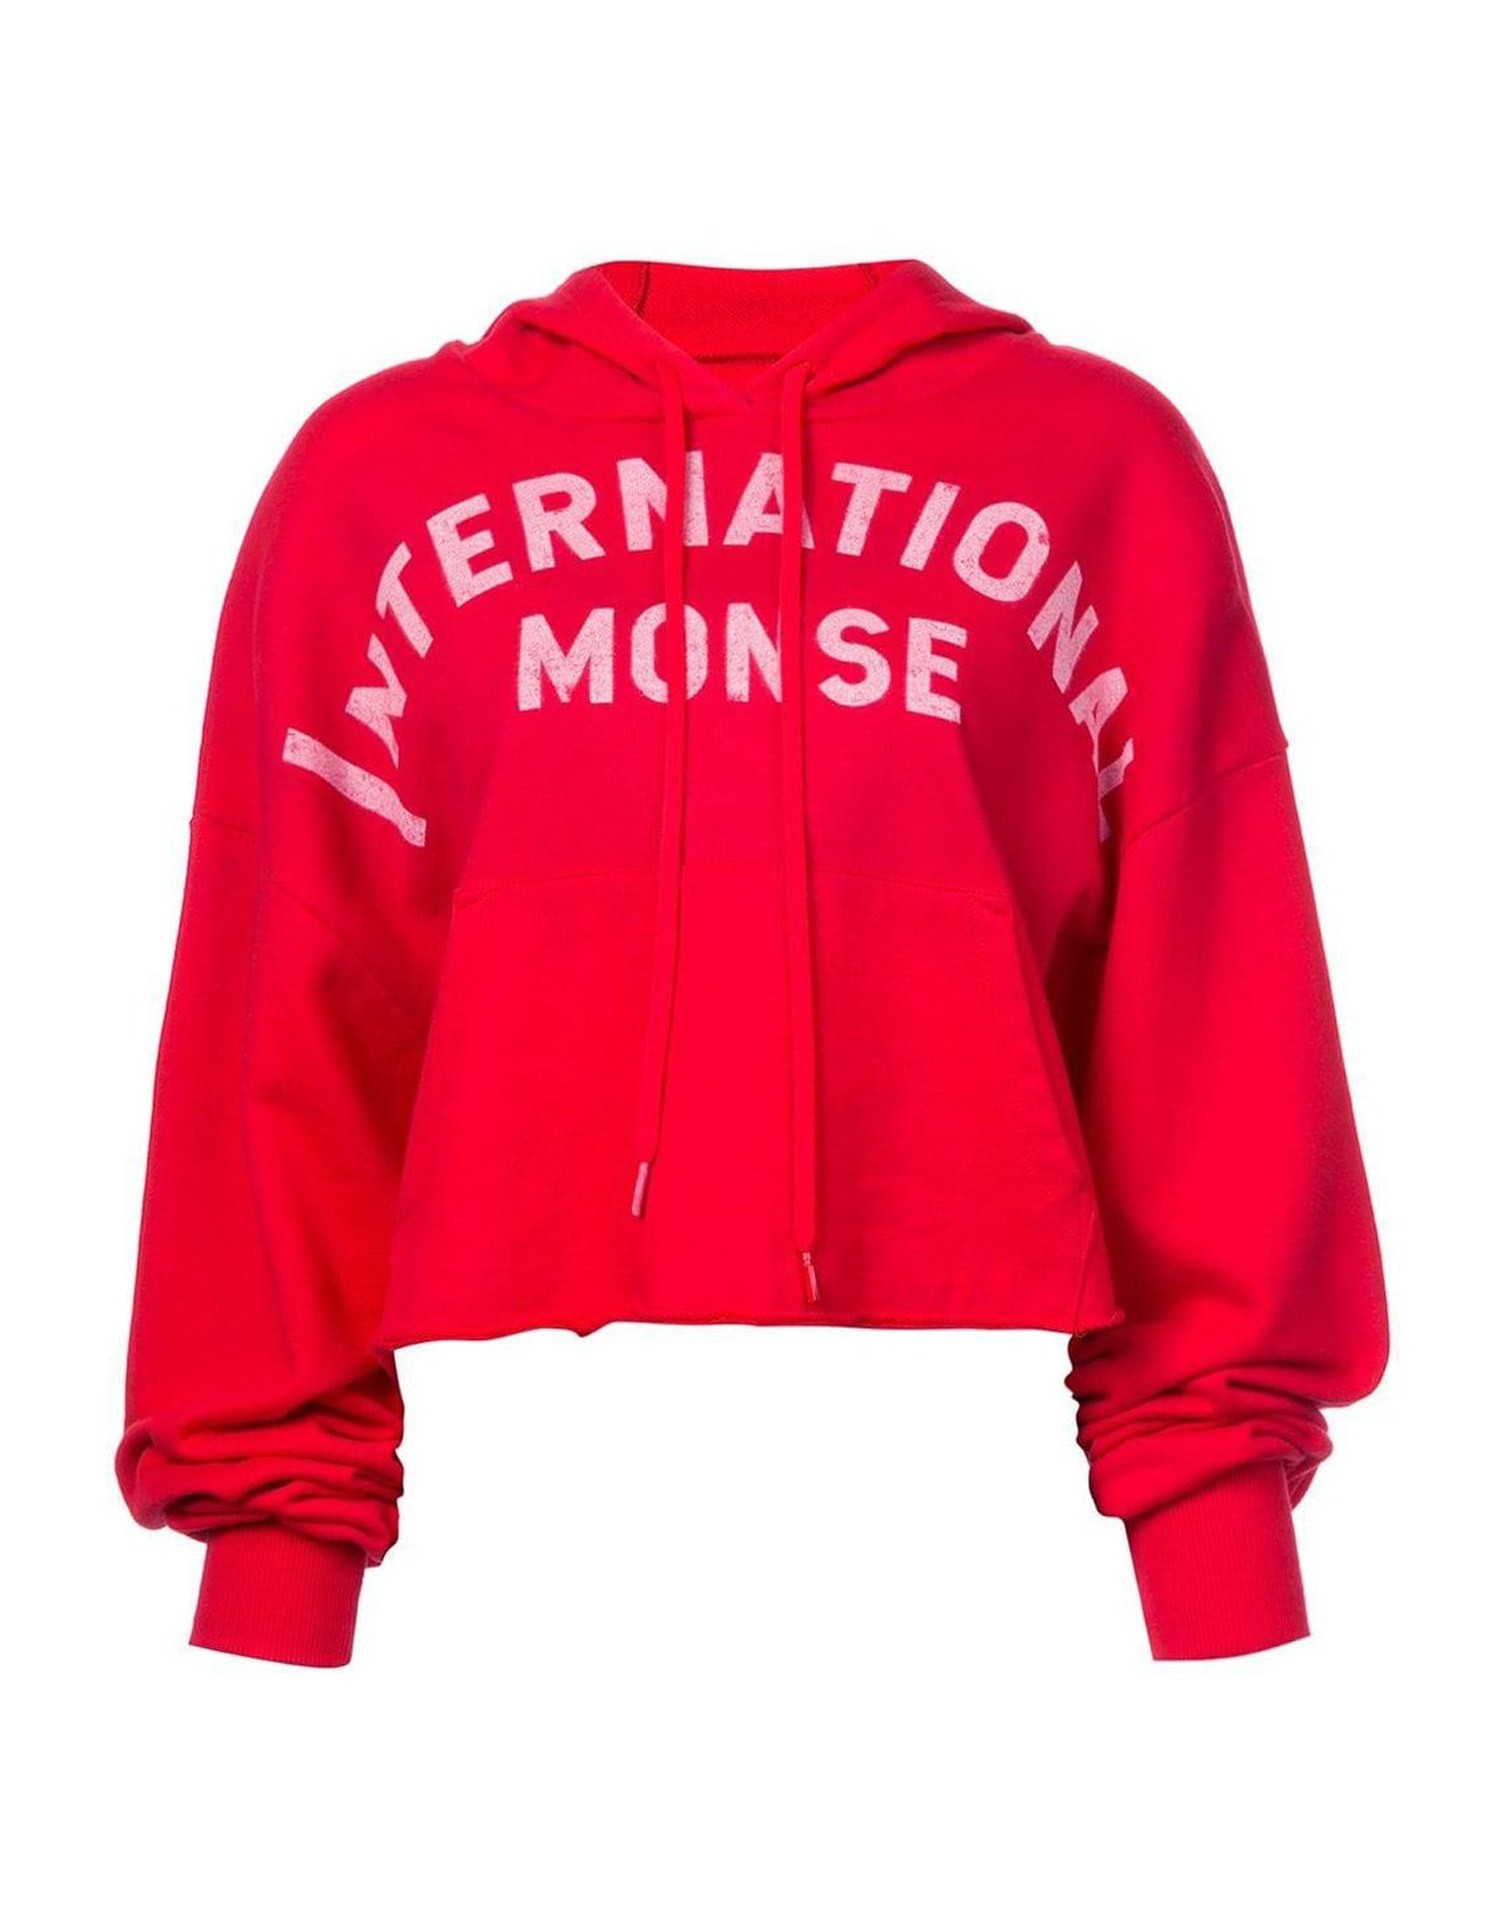 MONSE Cropped Hoodie in Red on Model Lookbook View